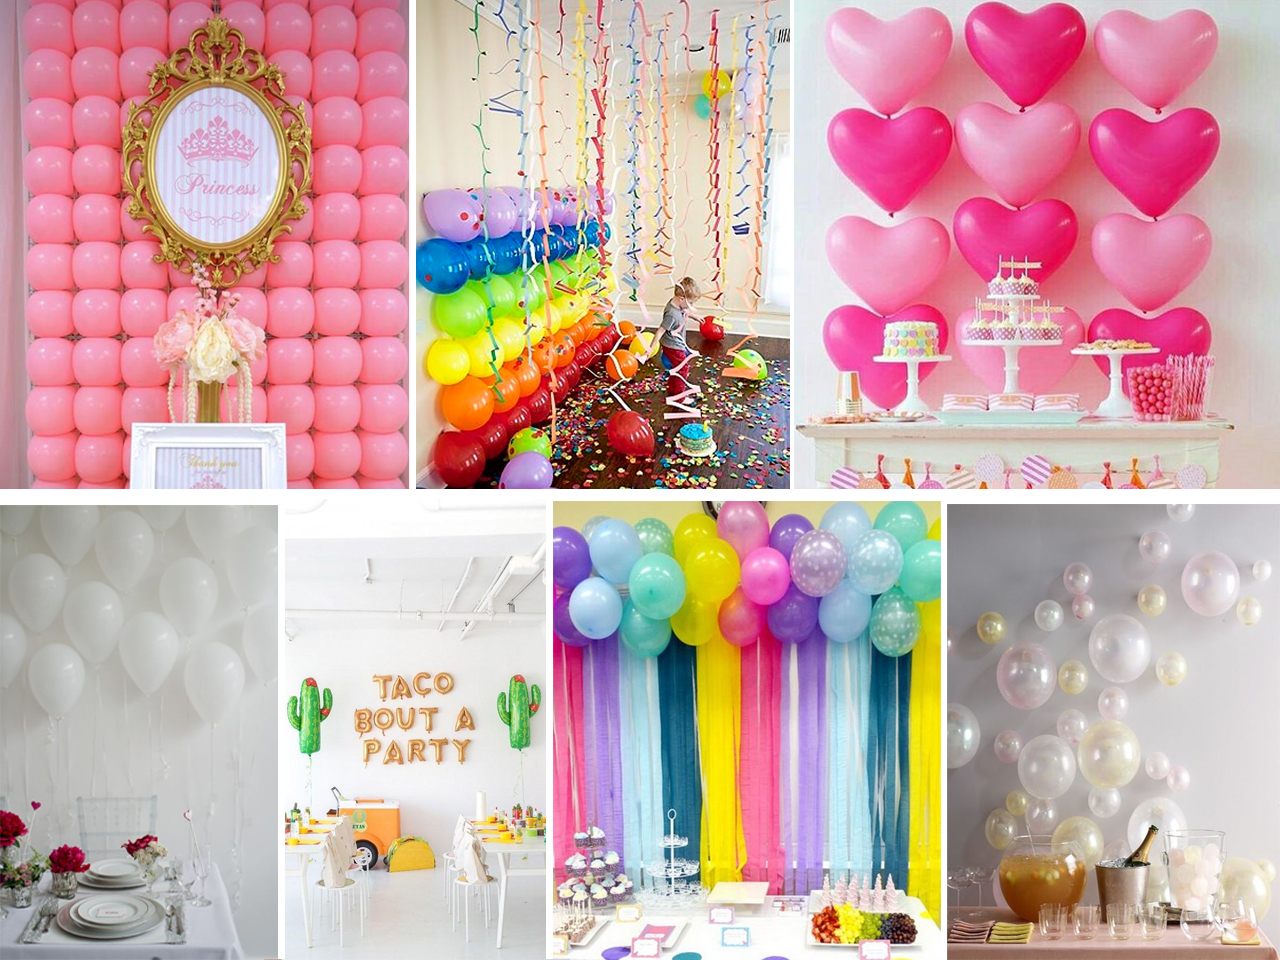 Descubre c mo decorar con globos con estas fant sticas ideas - Como decorar pared con fotos ...